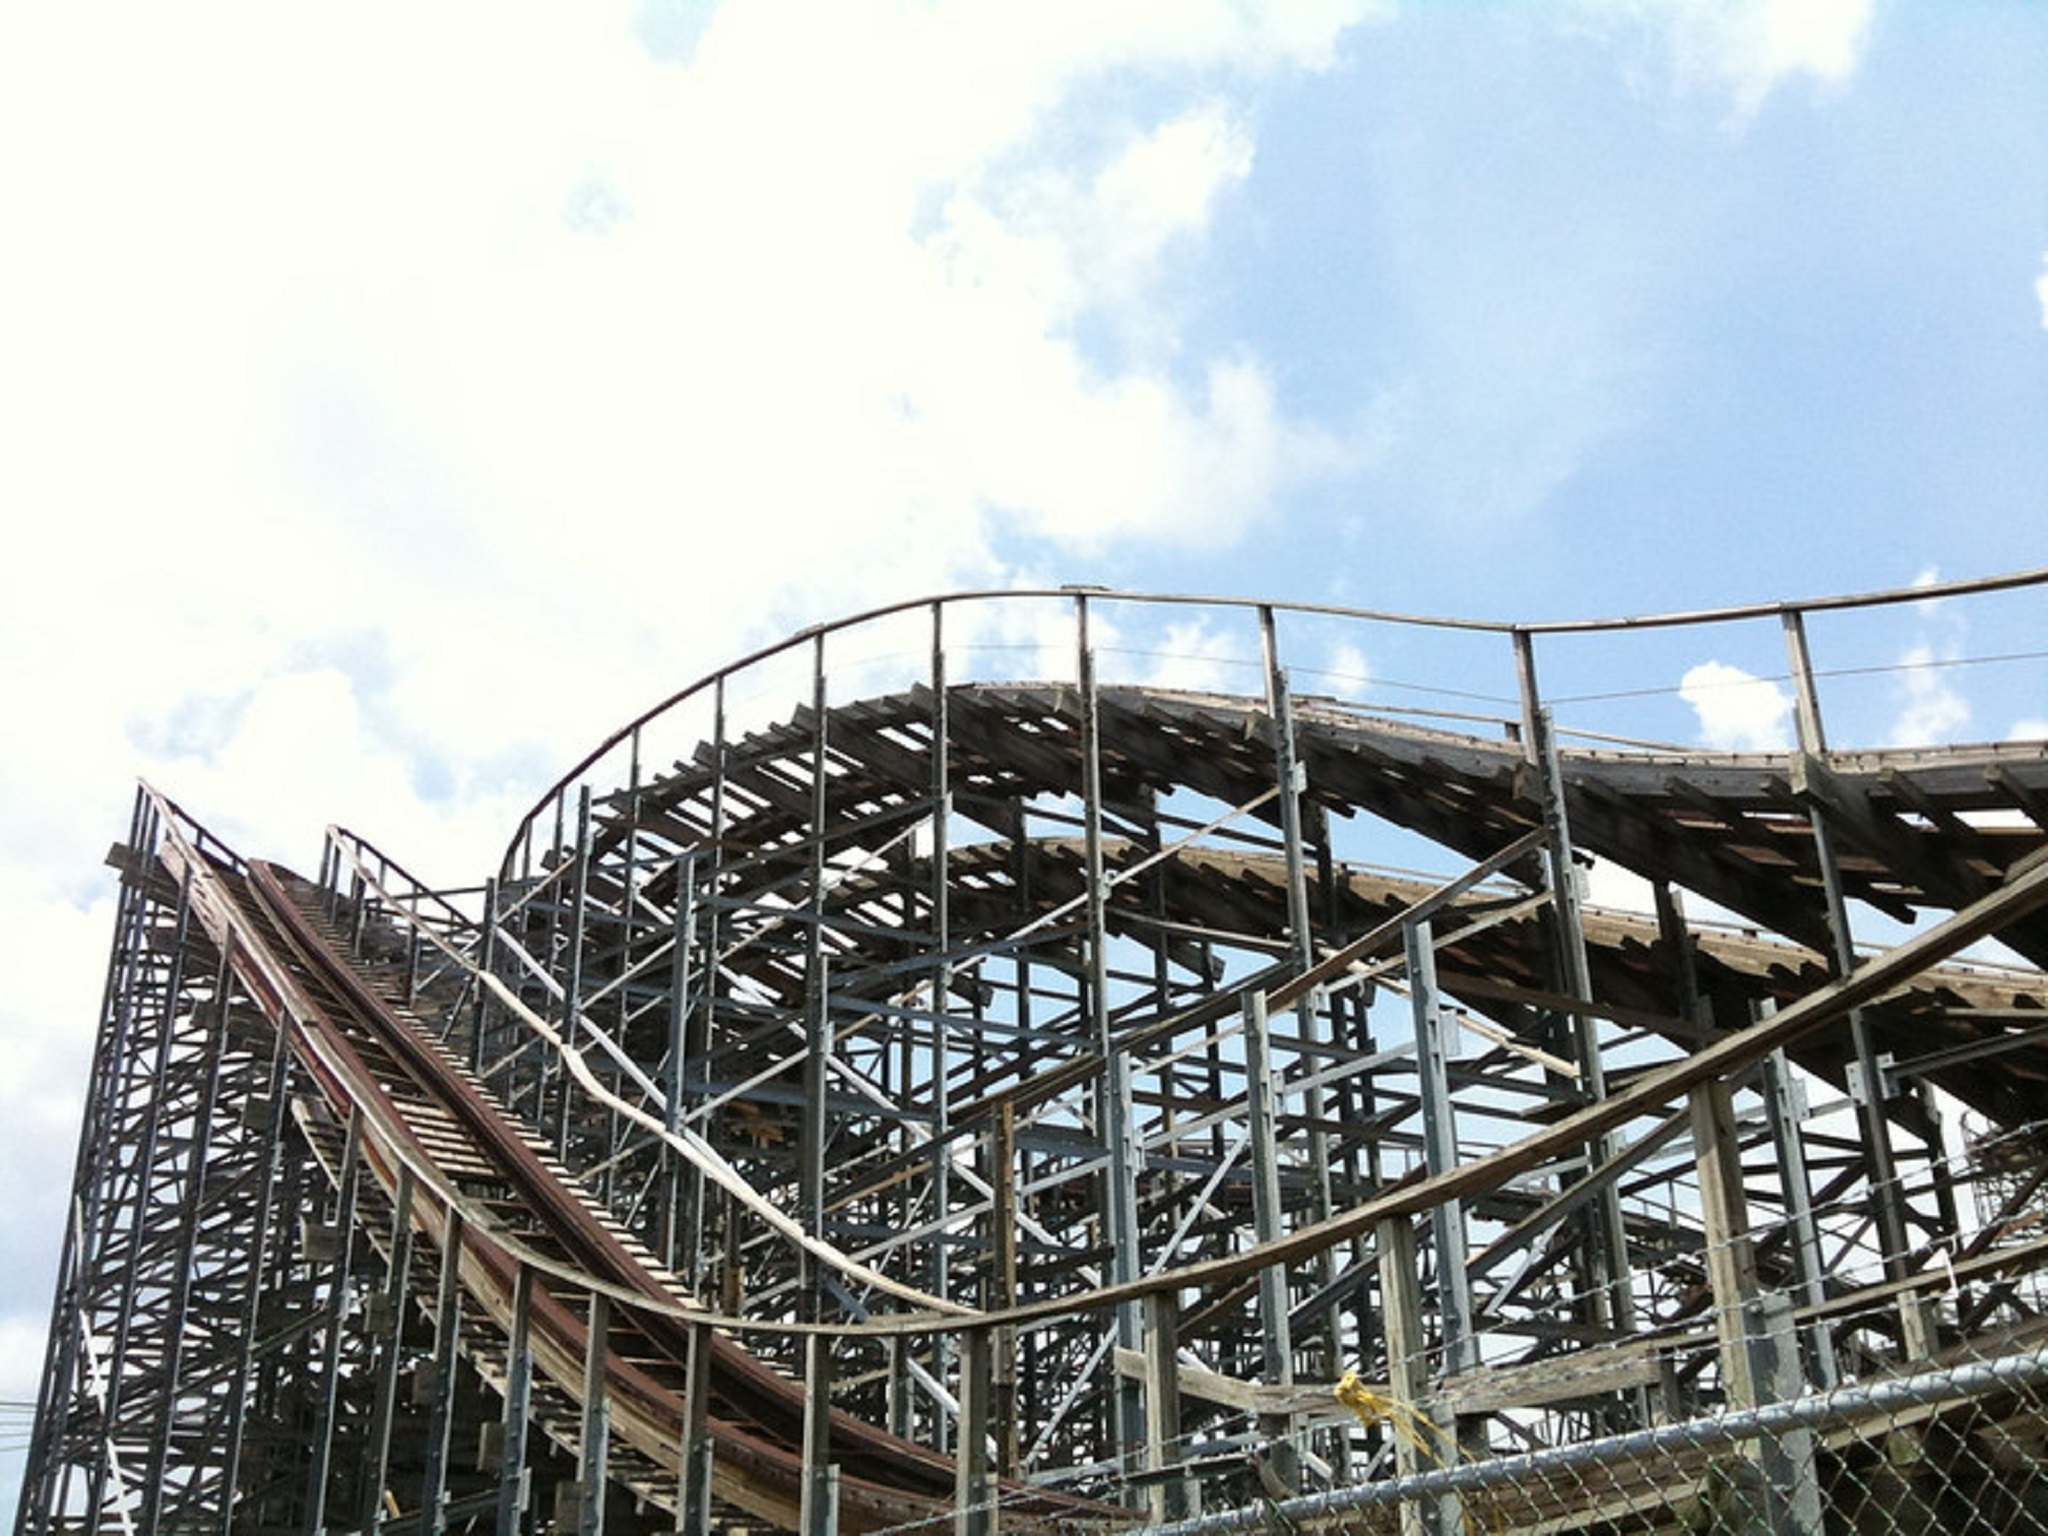 A wooden rollercoaster